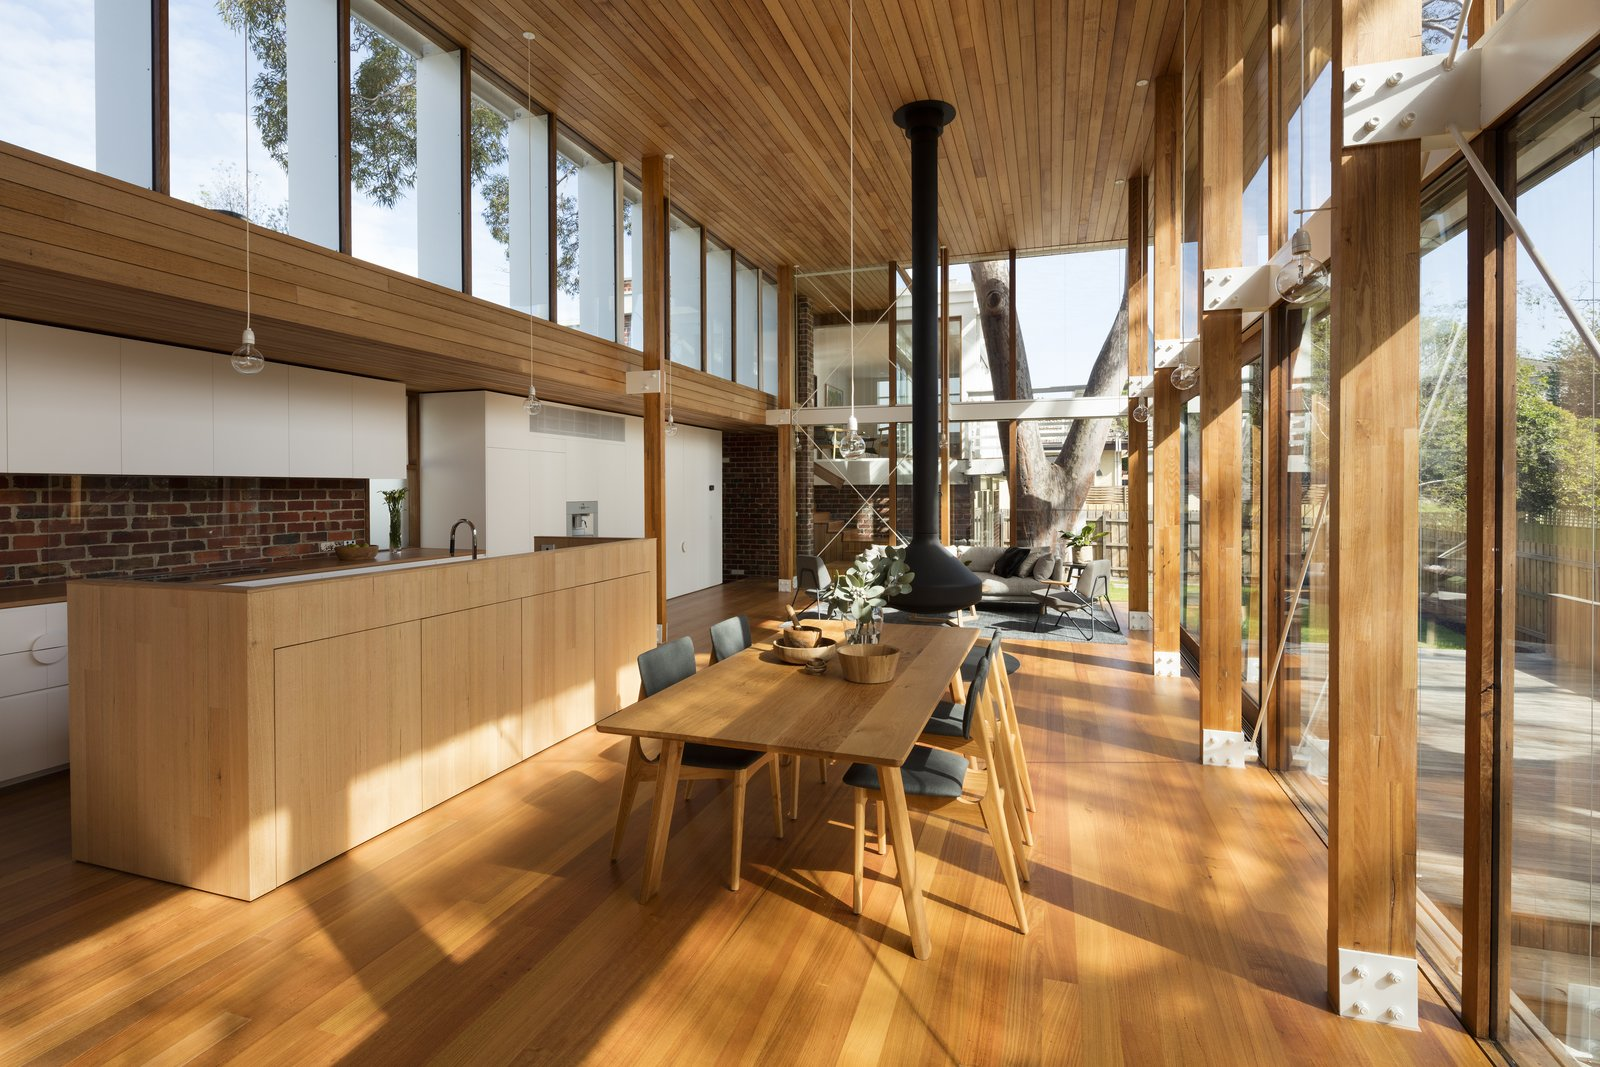 The interiors were reworked into a split-level open-plan living space that evokes a feeling of being standing on top of the fence, and being totally connected with the park.